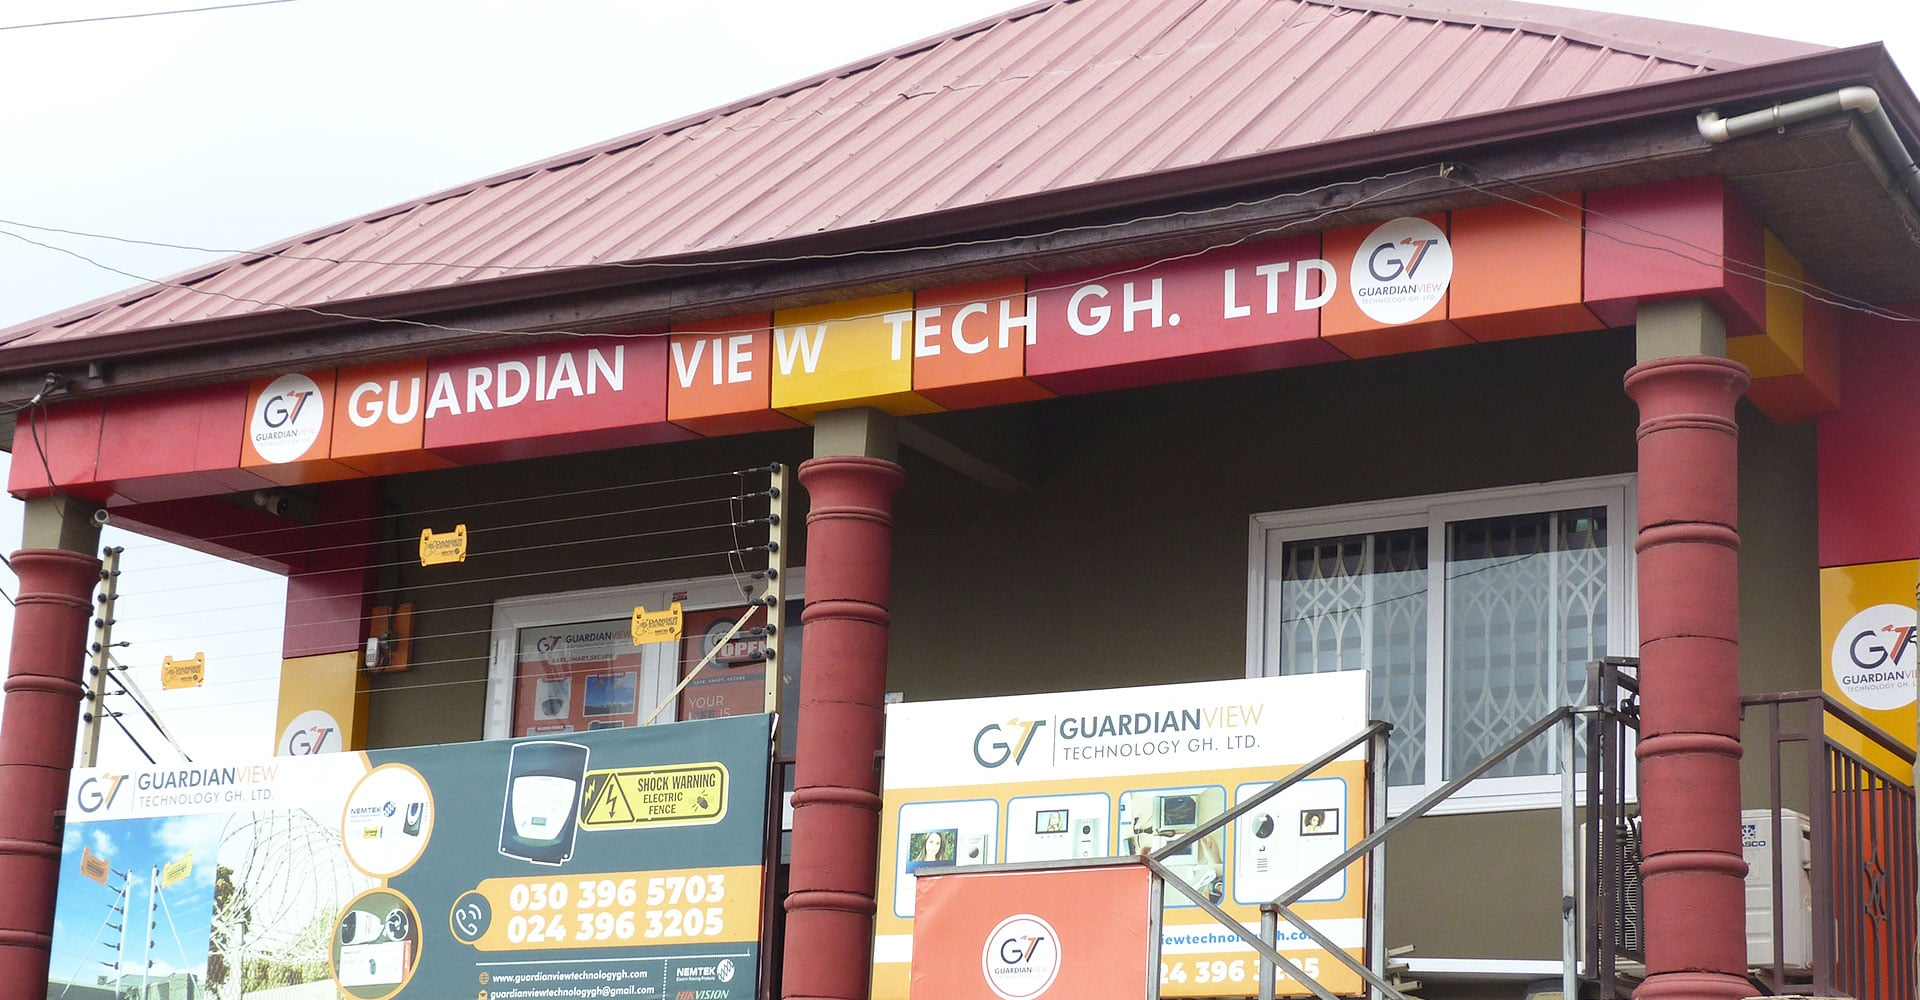 CCTV, Electric fence, main gate automation company in Ghana